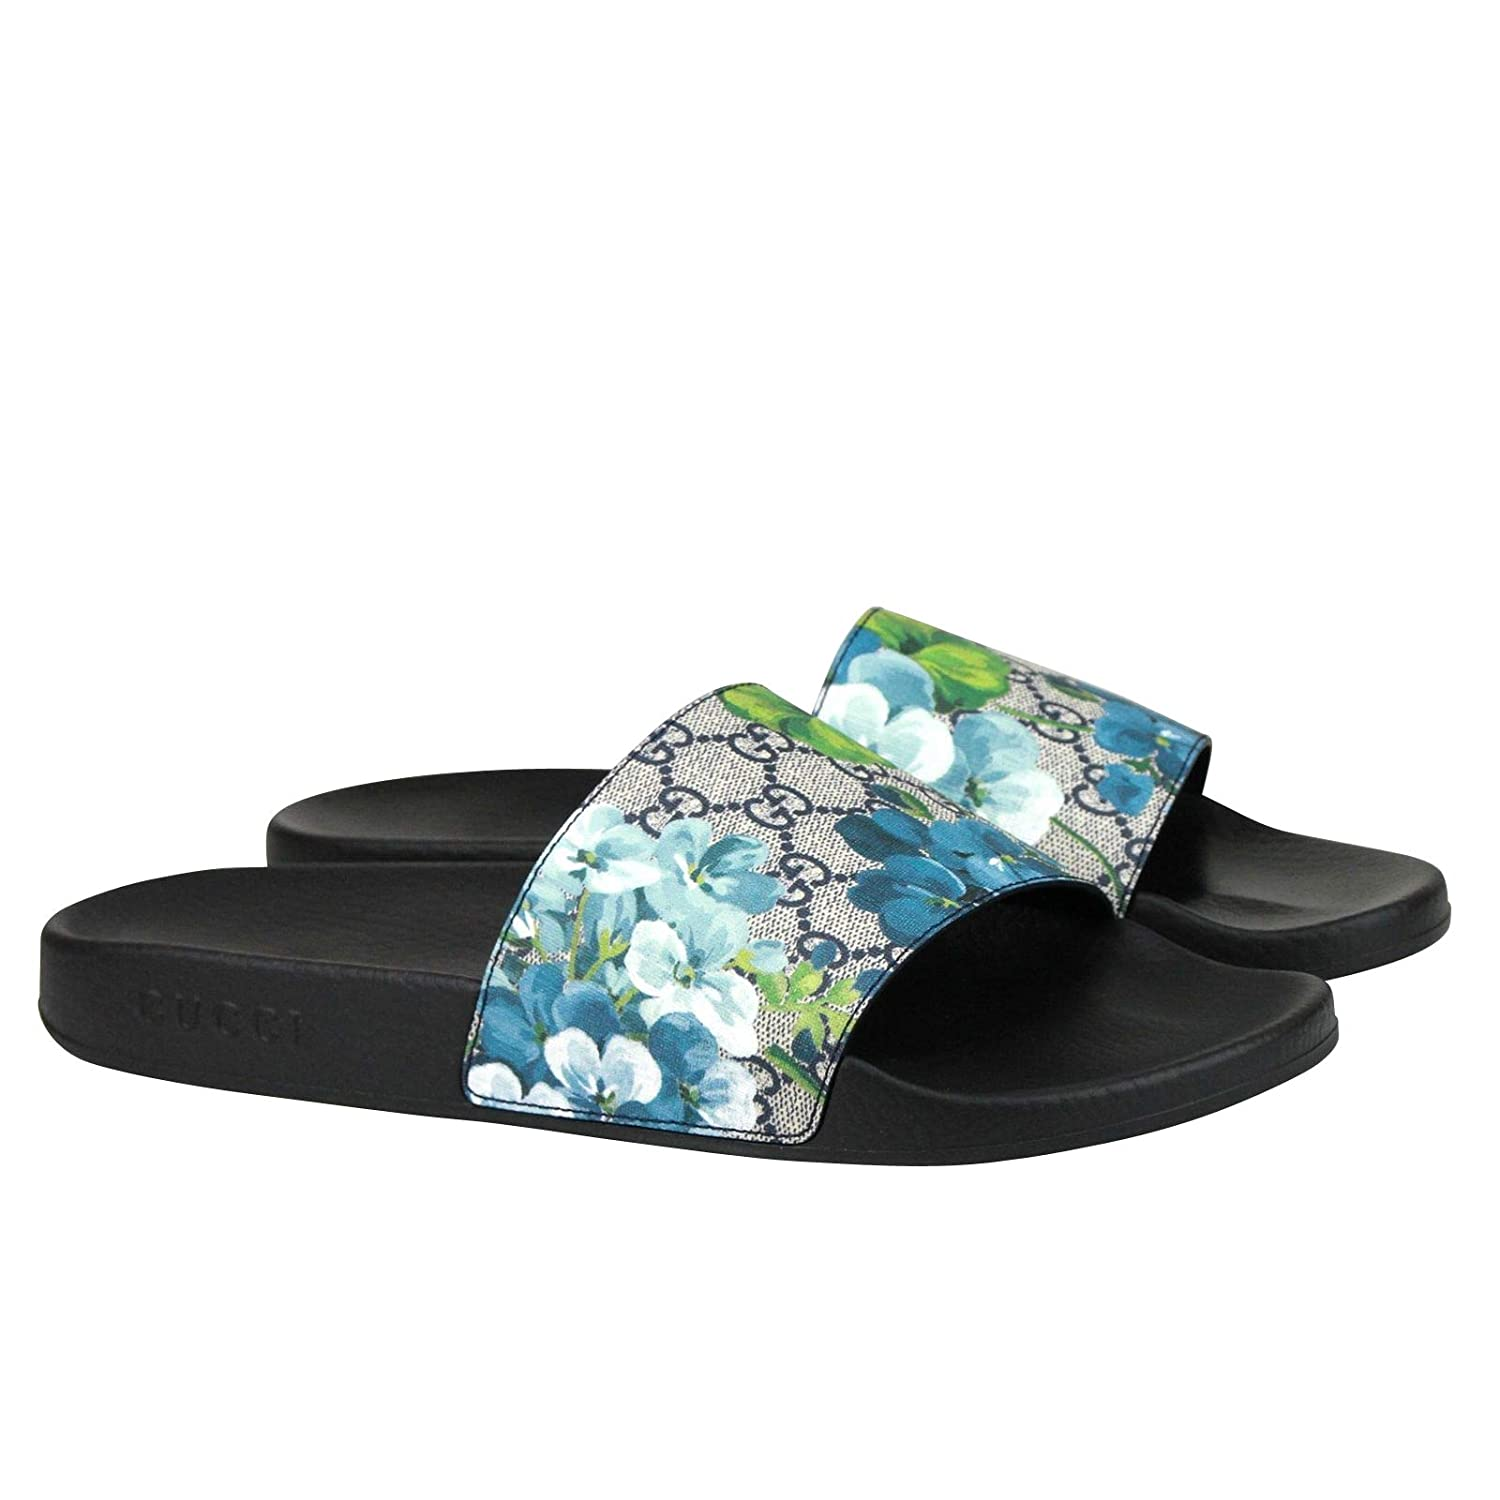 a4122feb3348ee Amazon.com  Gucci Bloom Print Blue Supreme GG Canvas Flower Slide Sandals  407345 8498 (14 G   15 US)  Shoes